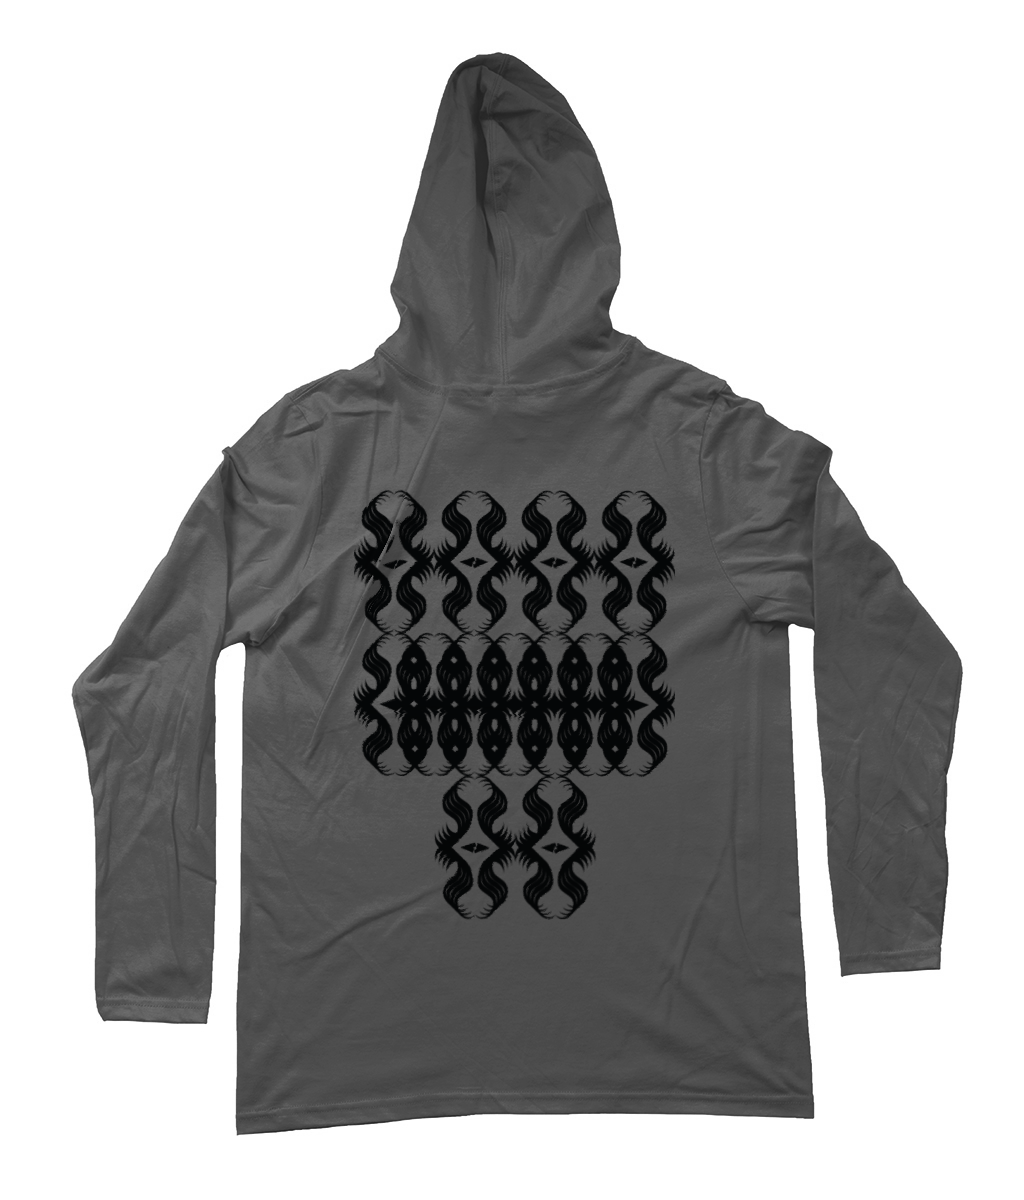 All-Seeing Eyes_Long-Sleeved [Heather Grey, Back Print] Hooded Men's T-Shirt